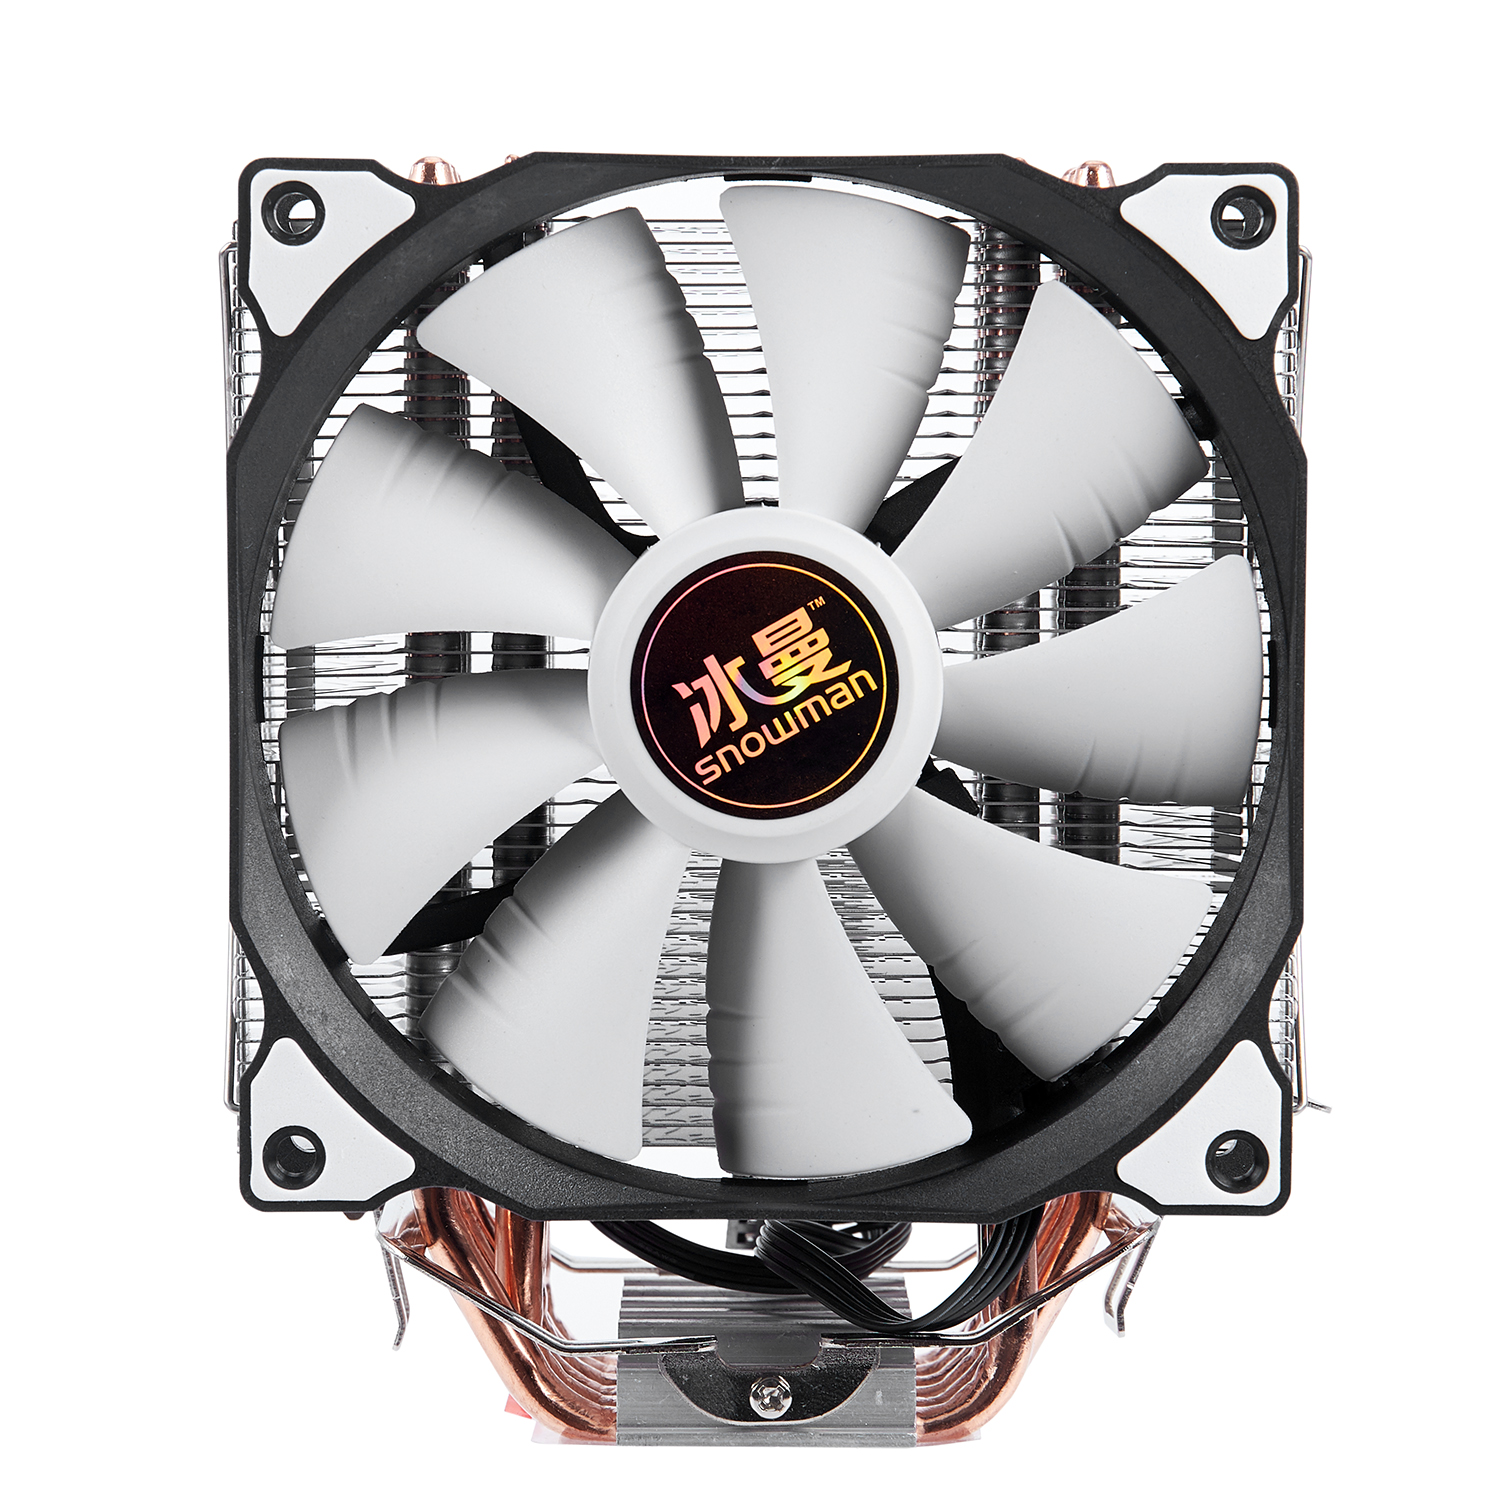 SNOWMAN Cpu-Cooler 12cm Fan Cooling LGA775 1151 Intel Amd 6-Heatpipe Single/double-Fan